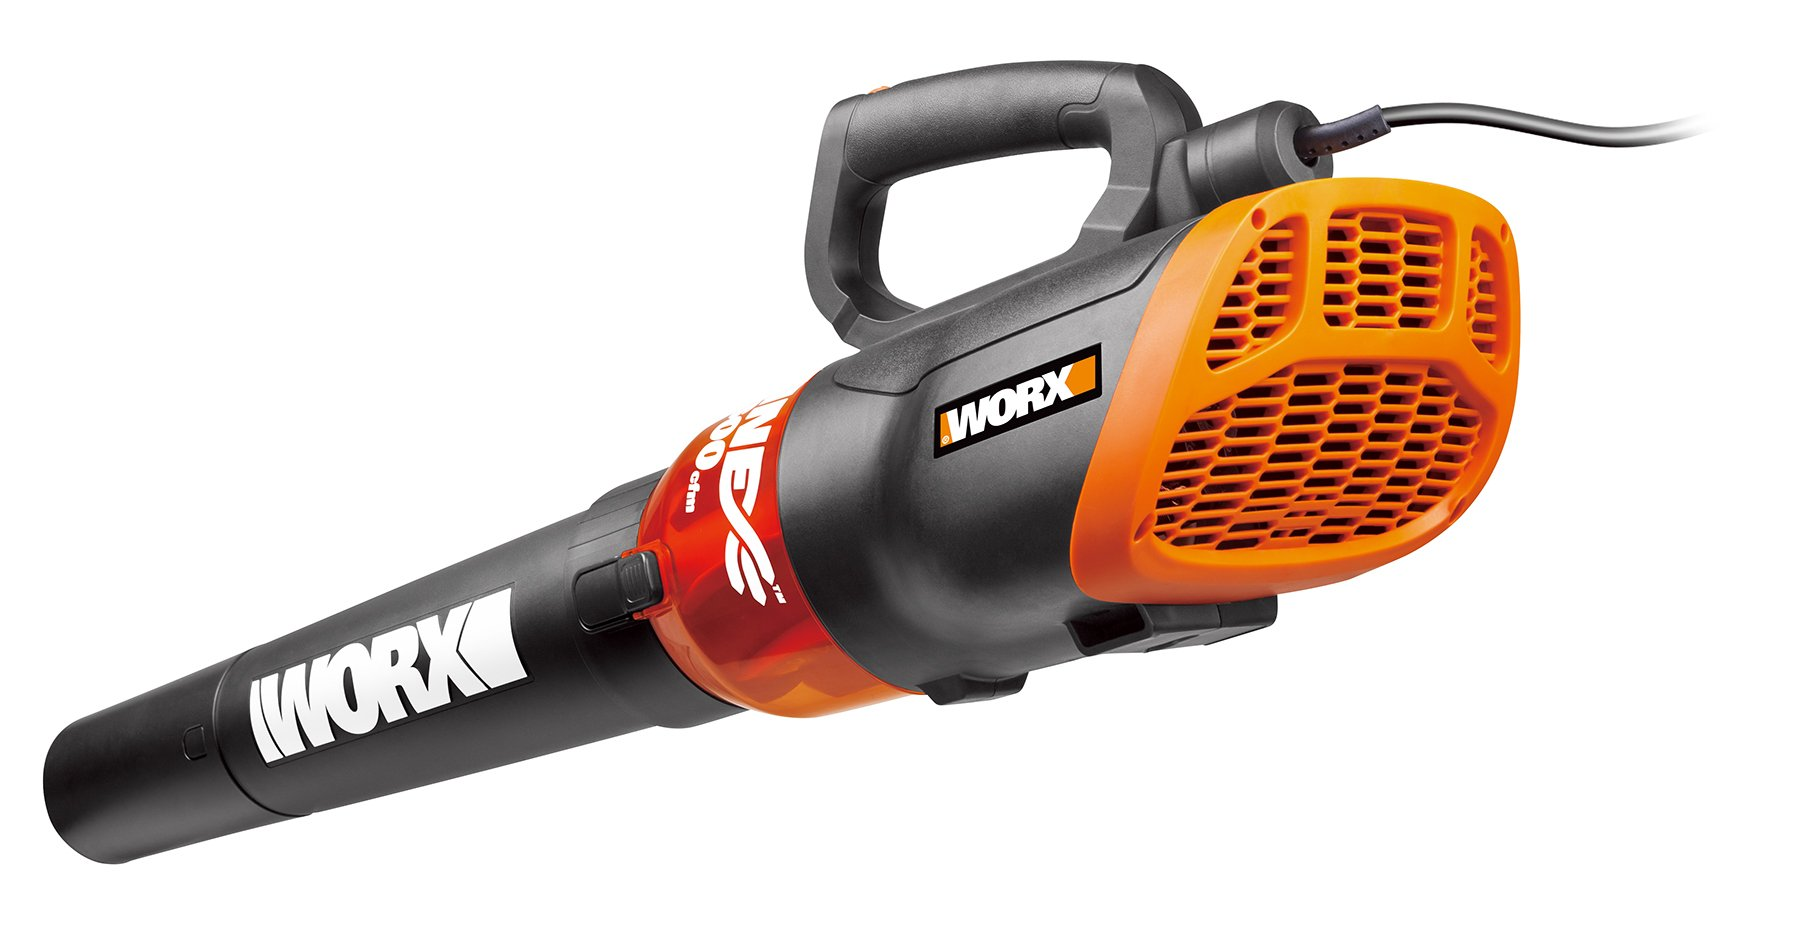 9 Best Leaf Blowers Reviews 2018 Buying Guide